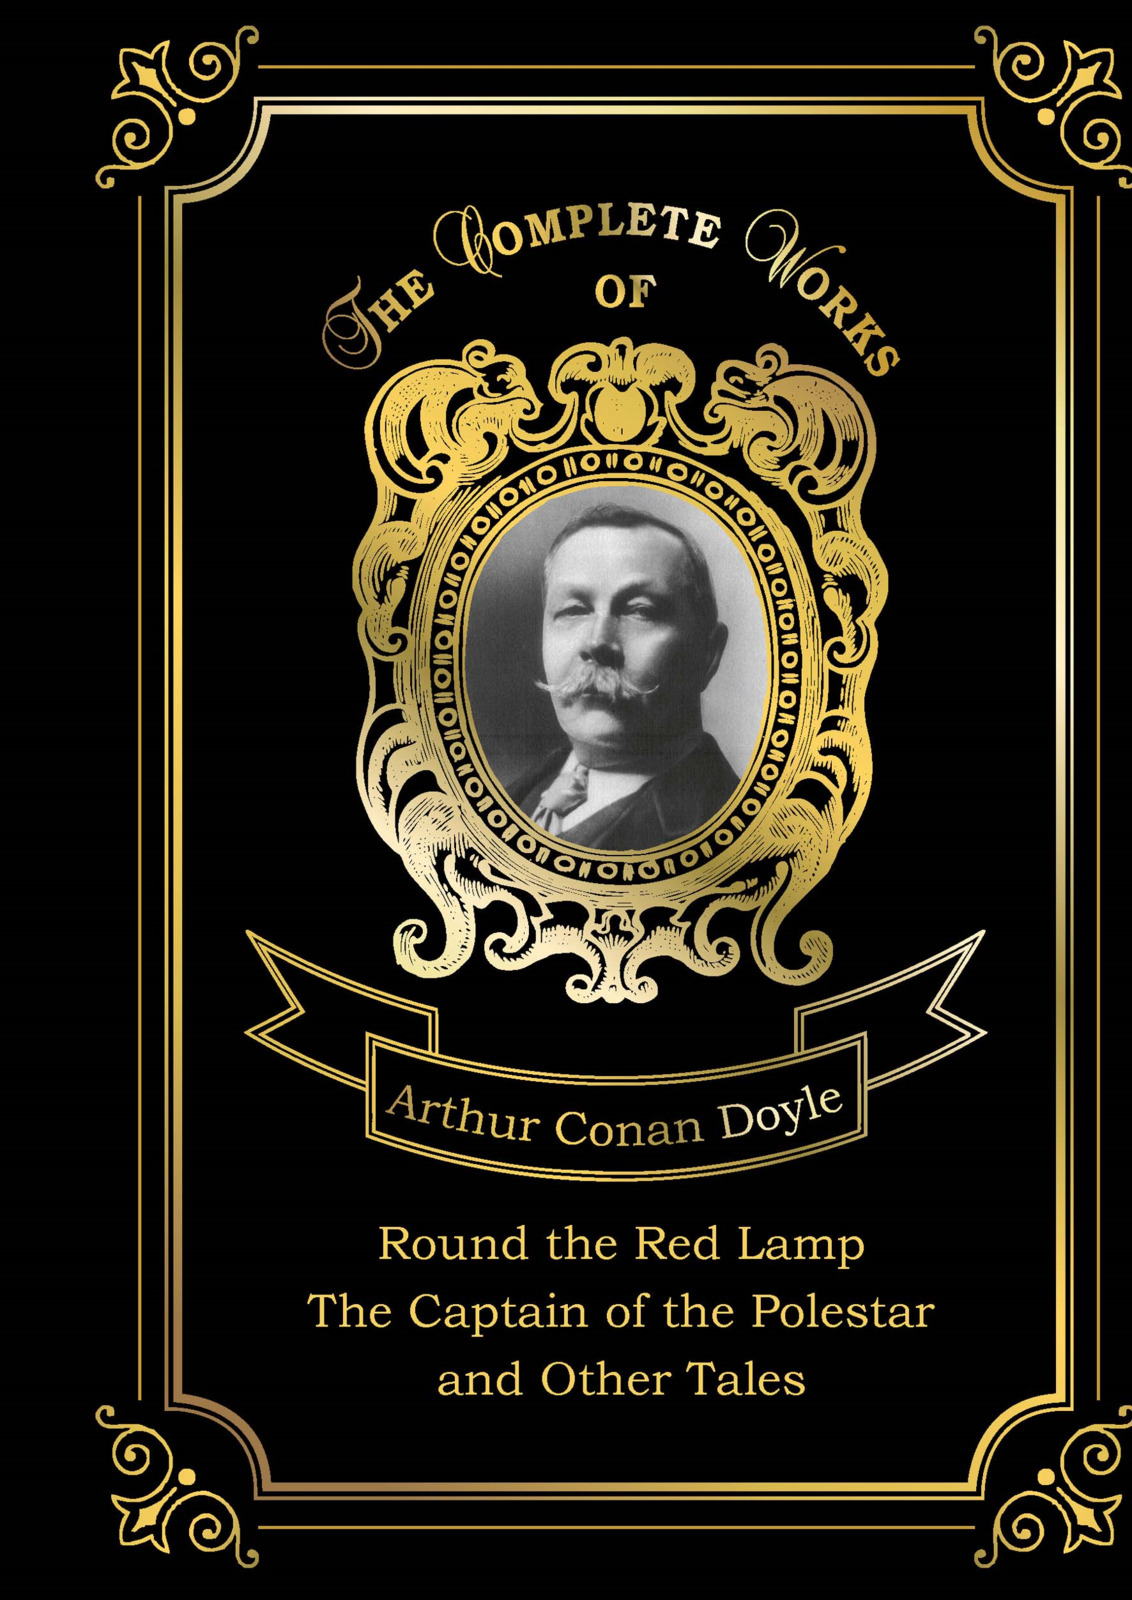 Arthur Conan Doyle Round the Red Lamp: The Captain of the Polestar and Other Tales arthur conan doyle the captain of the polestar and other tales isbn 978 5 521 07166 1